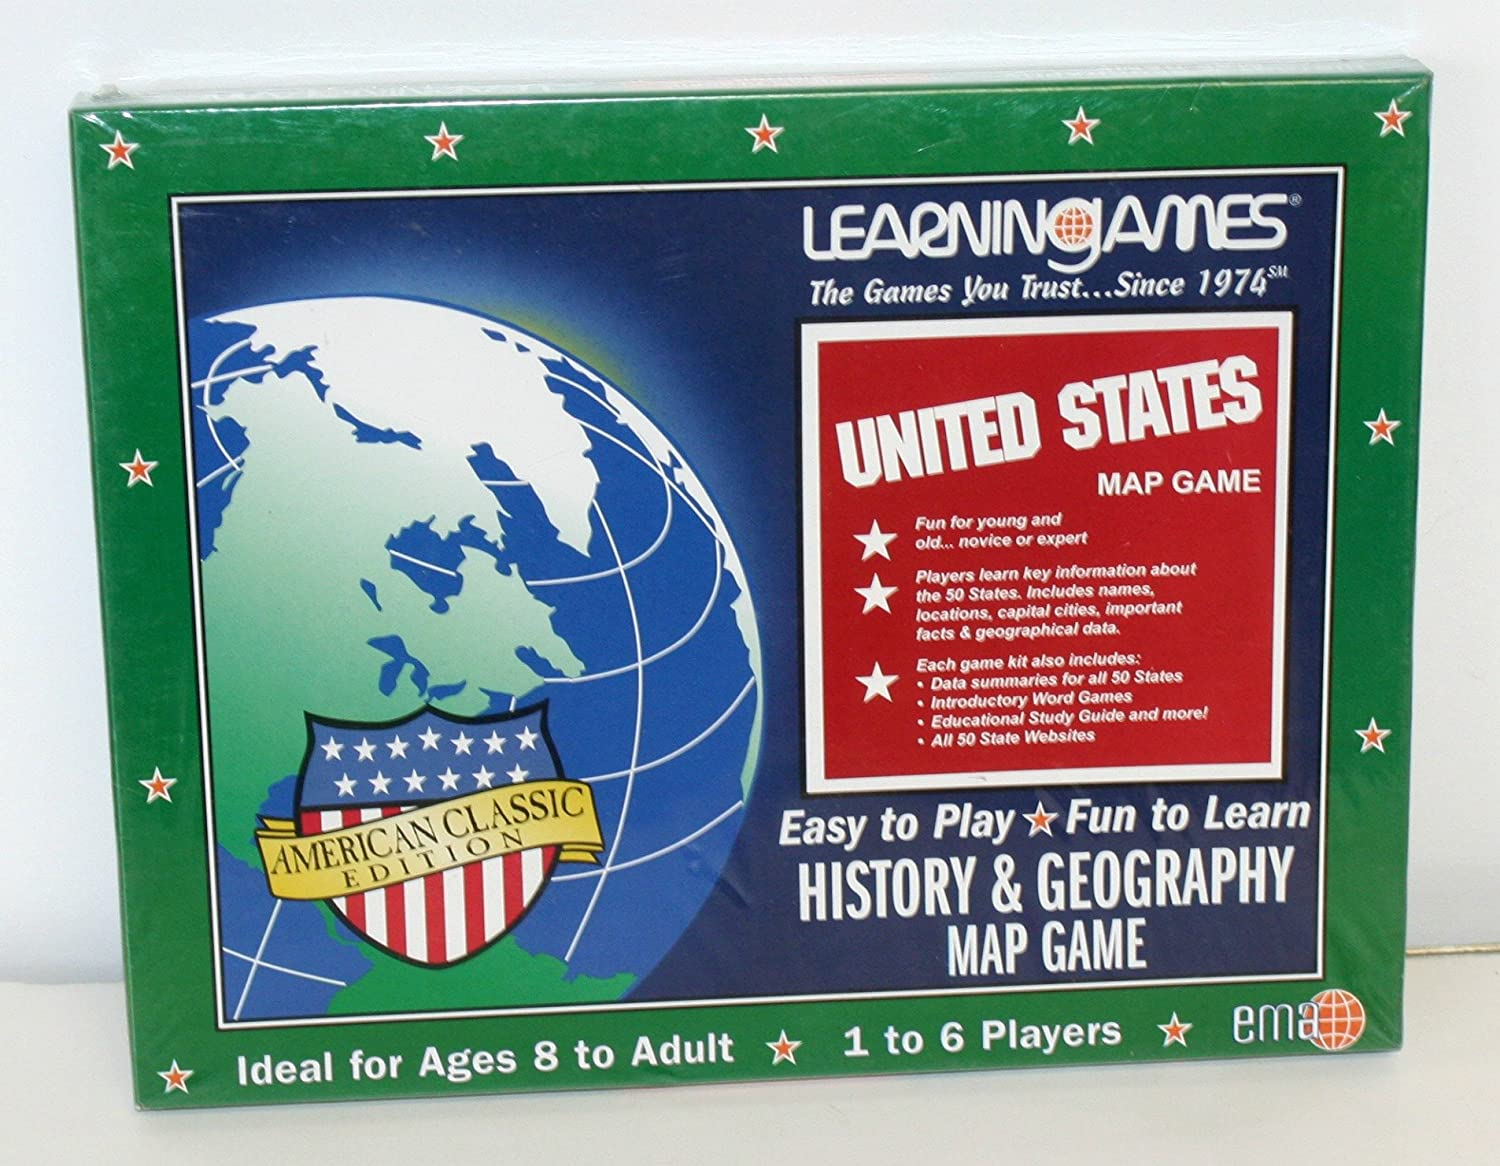 Amazon.com: United States Map Game History & Geography ... on australia map games, math map games, geography vocabulary, canada map games, southeast asia map games, geography flag games, weather map games, africa map games, africa country games, social studies map games, maps map games, african geography games, football map games, geography review, middle east map games, world map games, geography outline maps, europe map games, geography case study, usa map games,